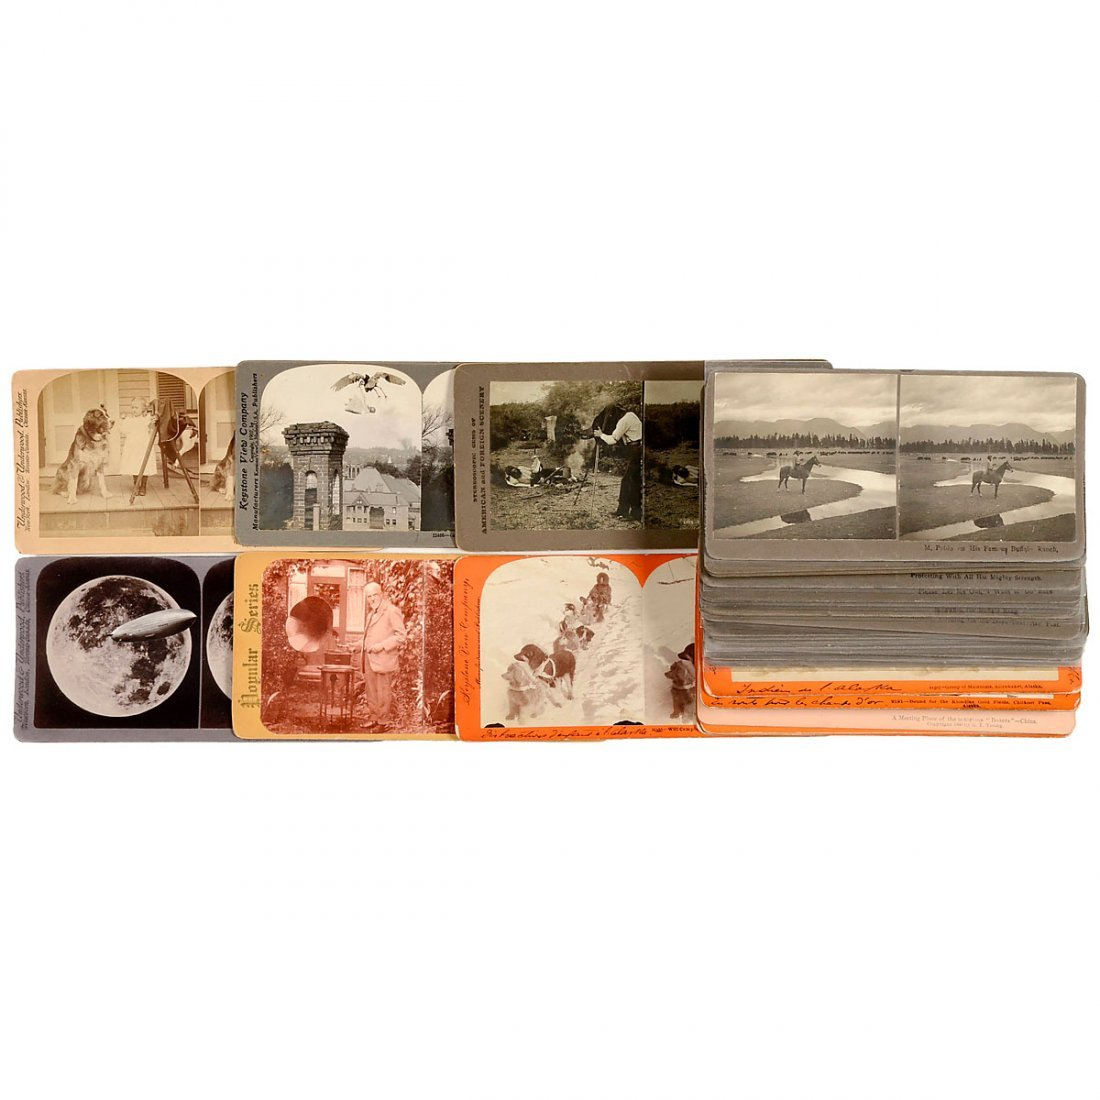 Stereo Cards With Unusual Motifs 9 x 18 cm